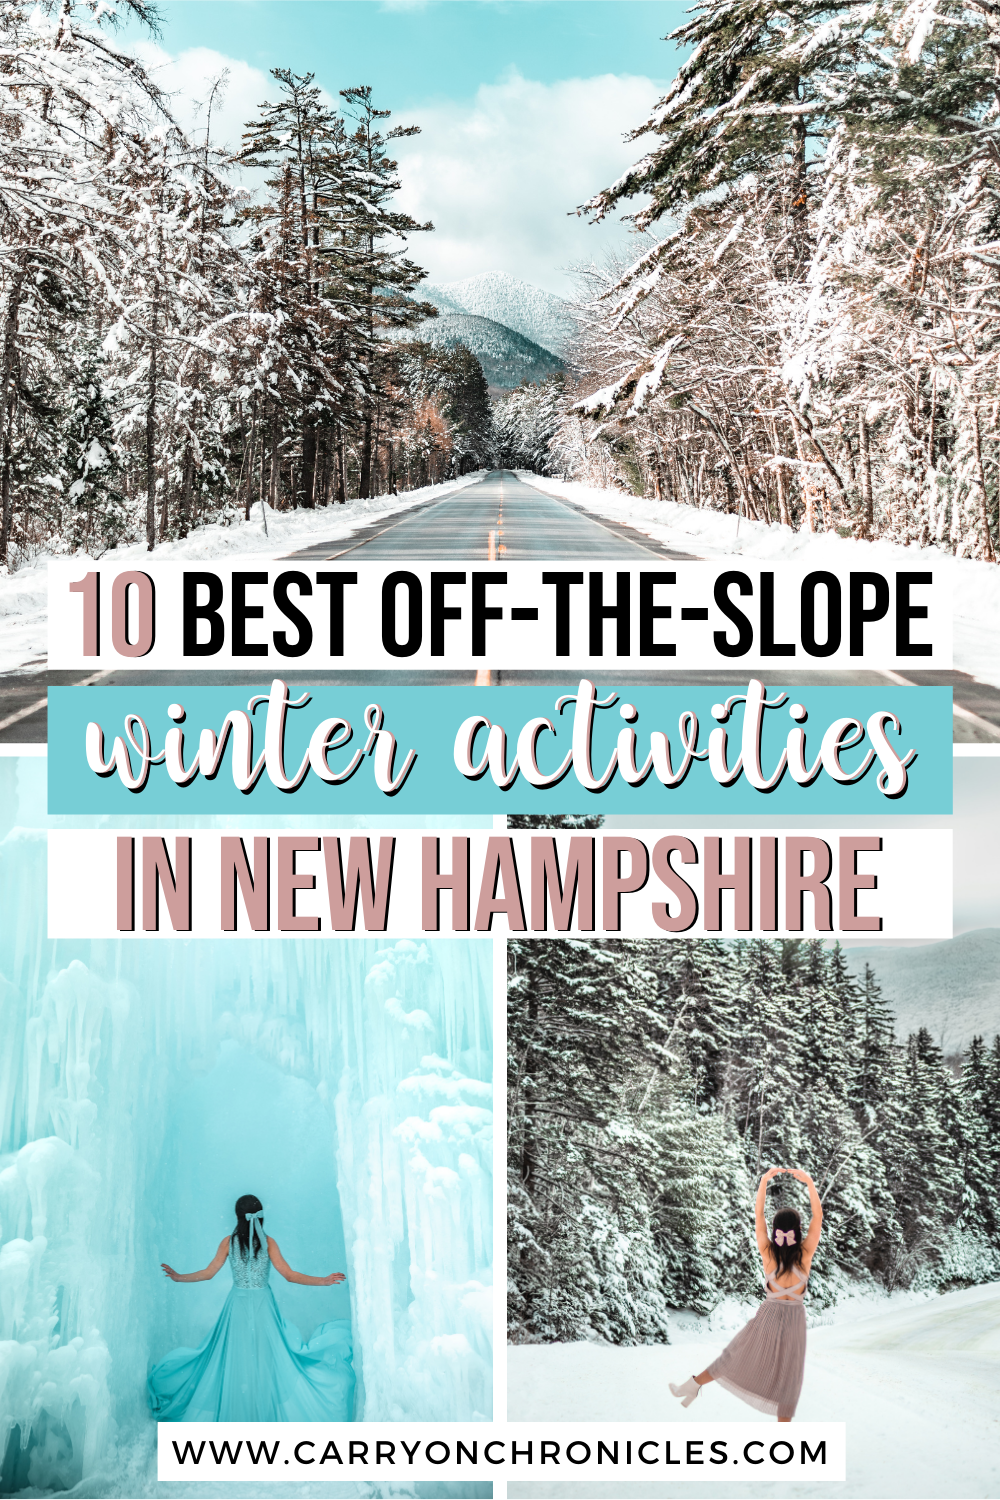 Top 10 Things to Do in New Hampshire in Winter Off the Slopes